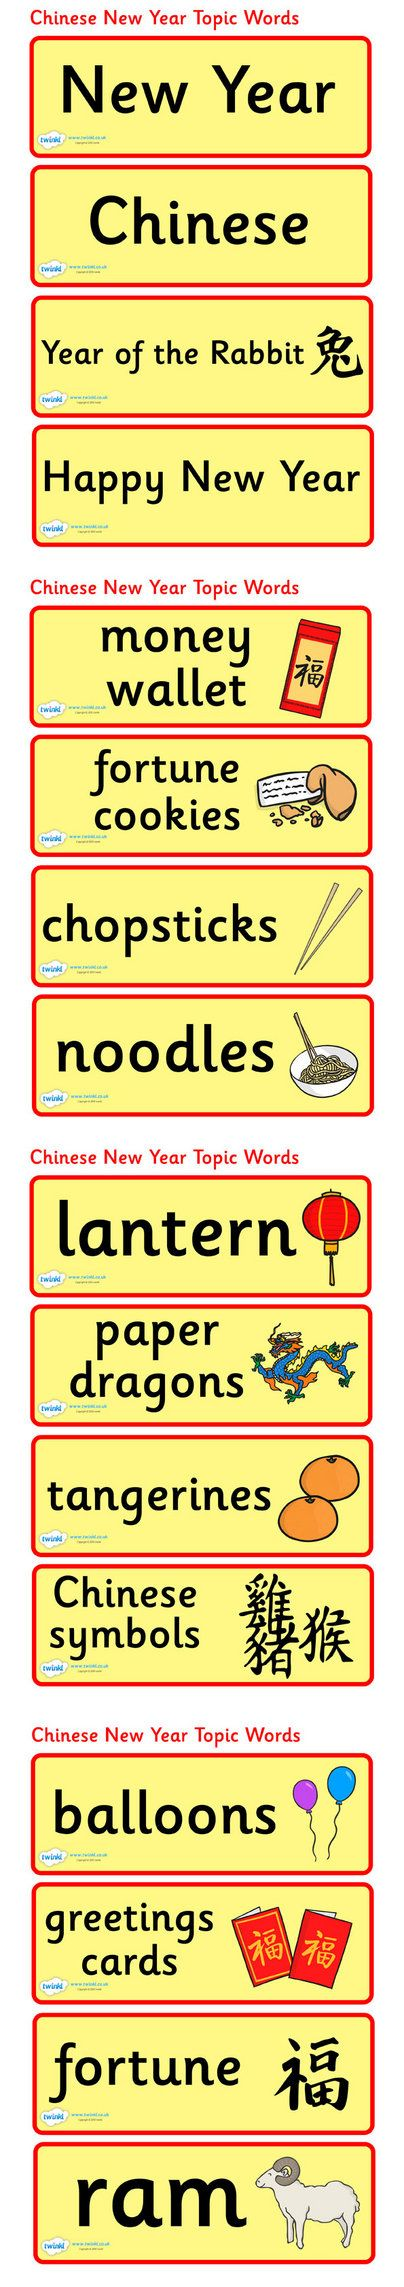 Chinese New Year Topic Word Cards - Pop over to our site at www.twinkl.co.uk and check out our lovely Chinese New Year primary teaching resources! chinese new year, topic cards, word card, key words #twinkl #resources